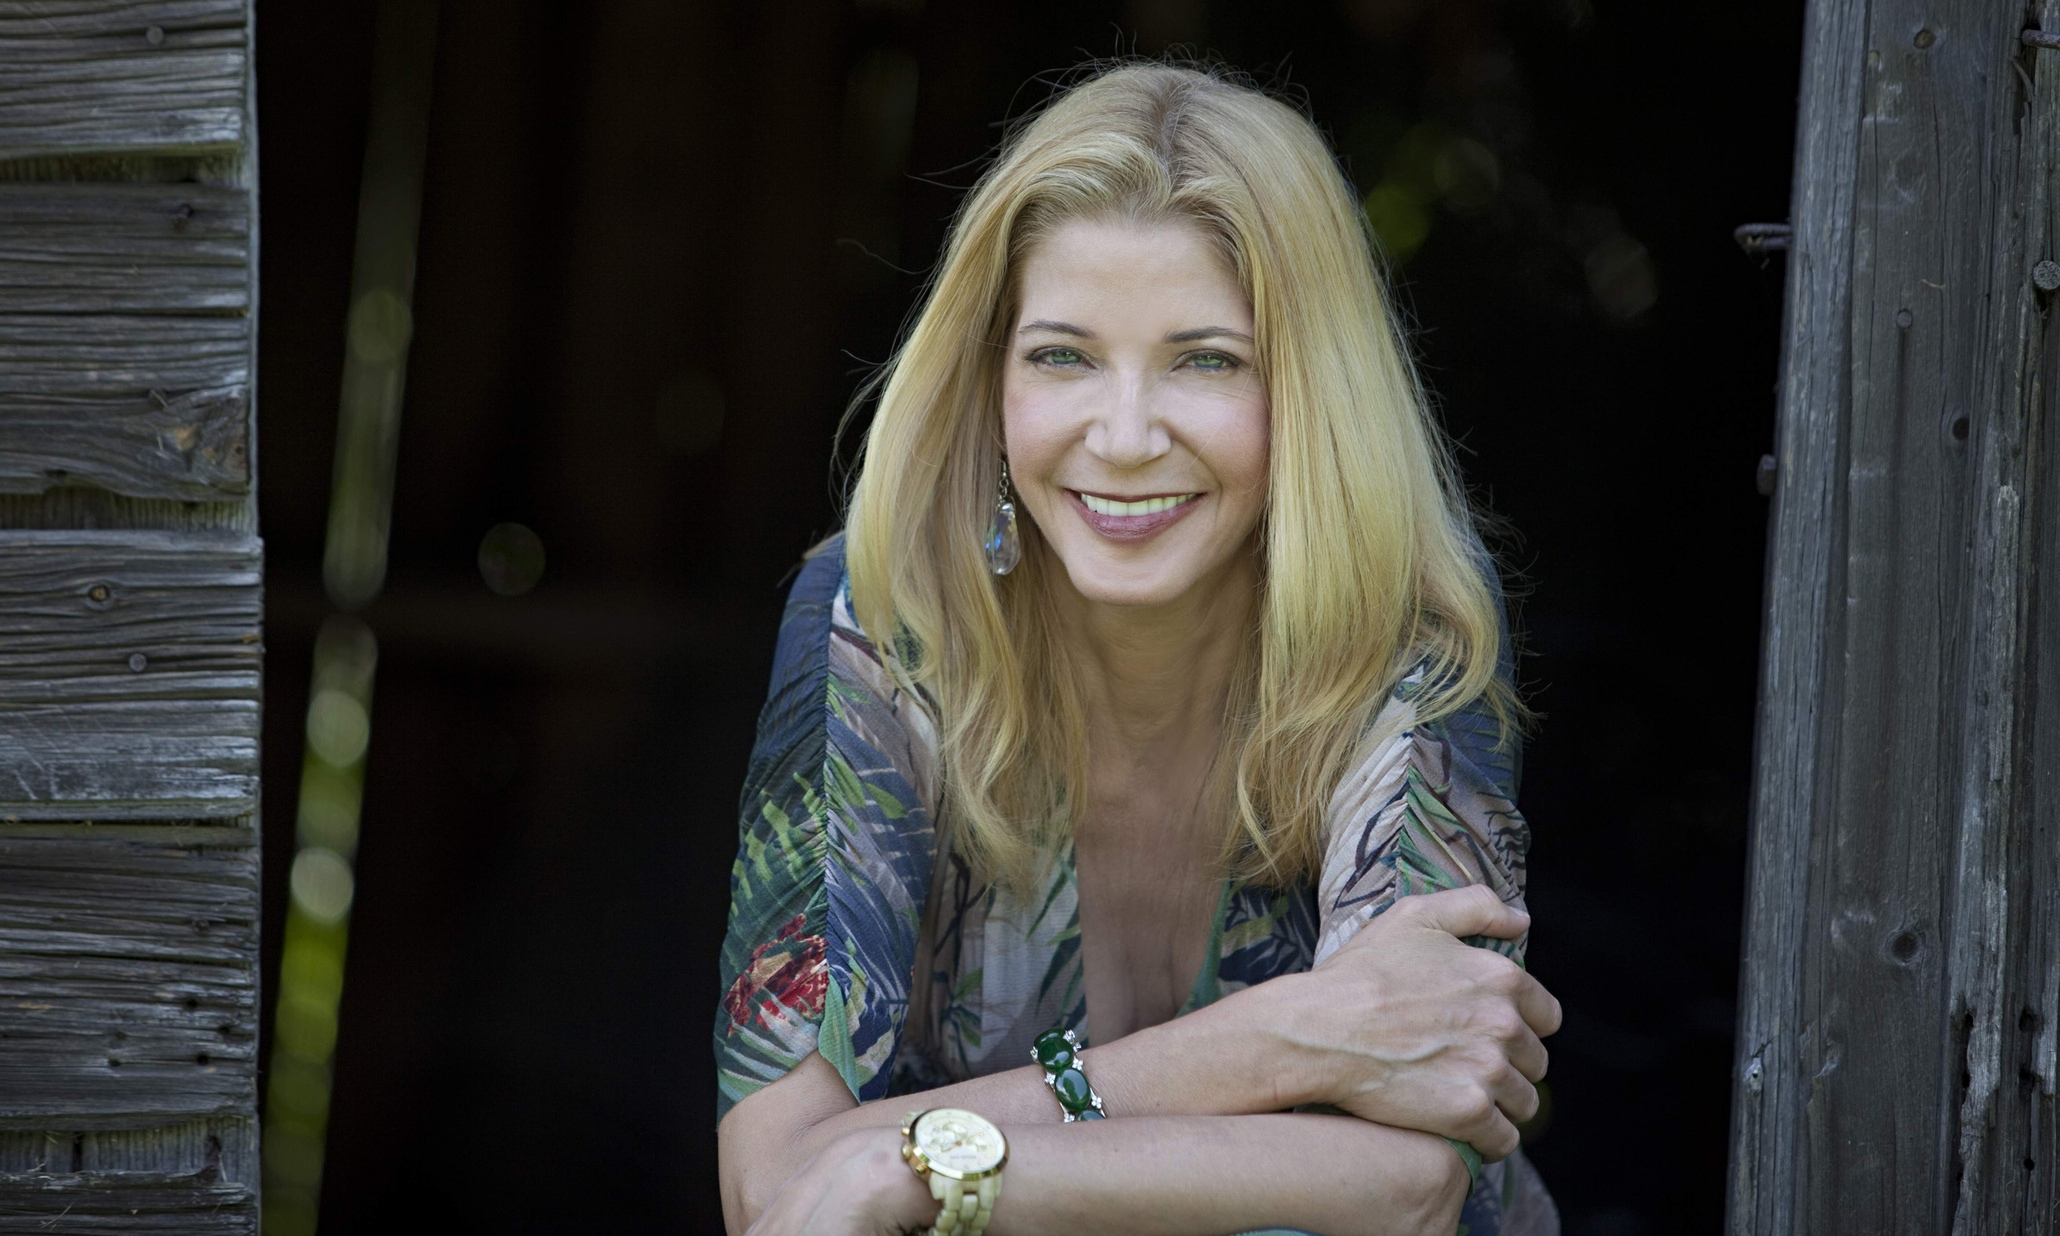 bushnell single girls When it comes to dating, women don't know what they want and with a laugh of triumph,  candace bushnell is the best-selling author of killing monica, .